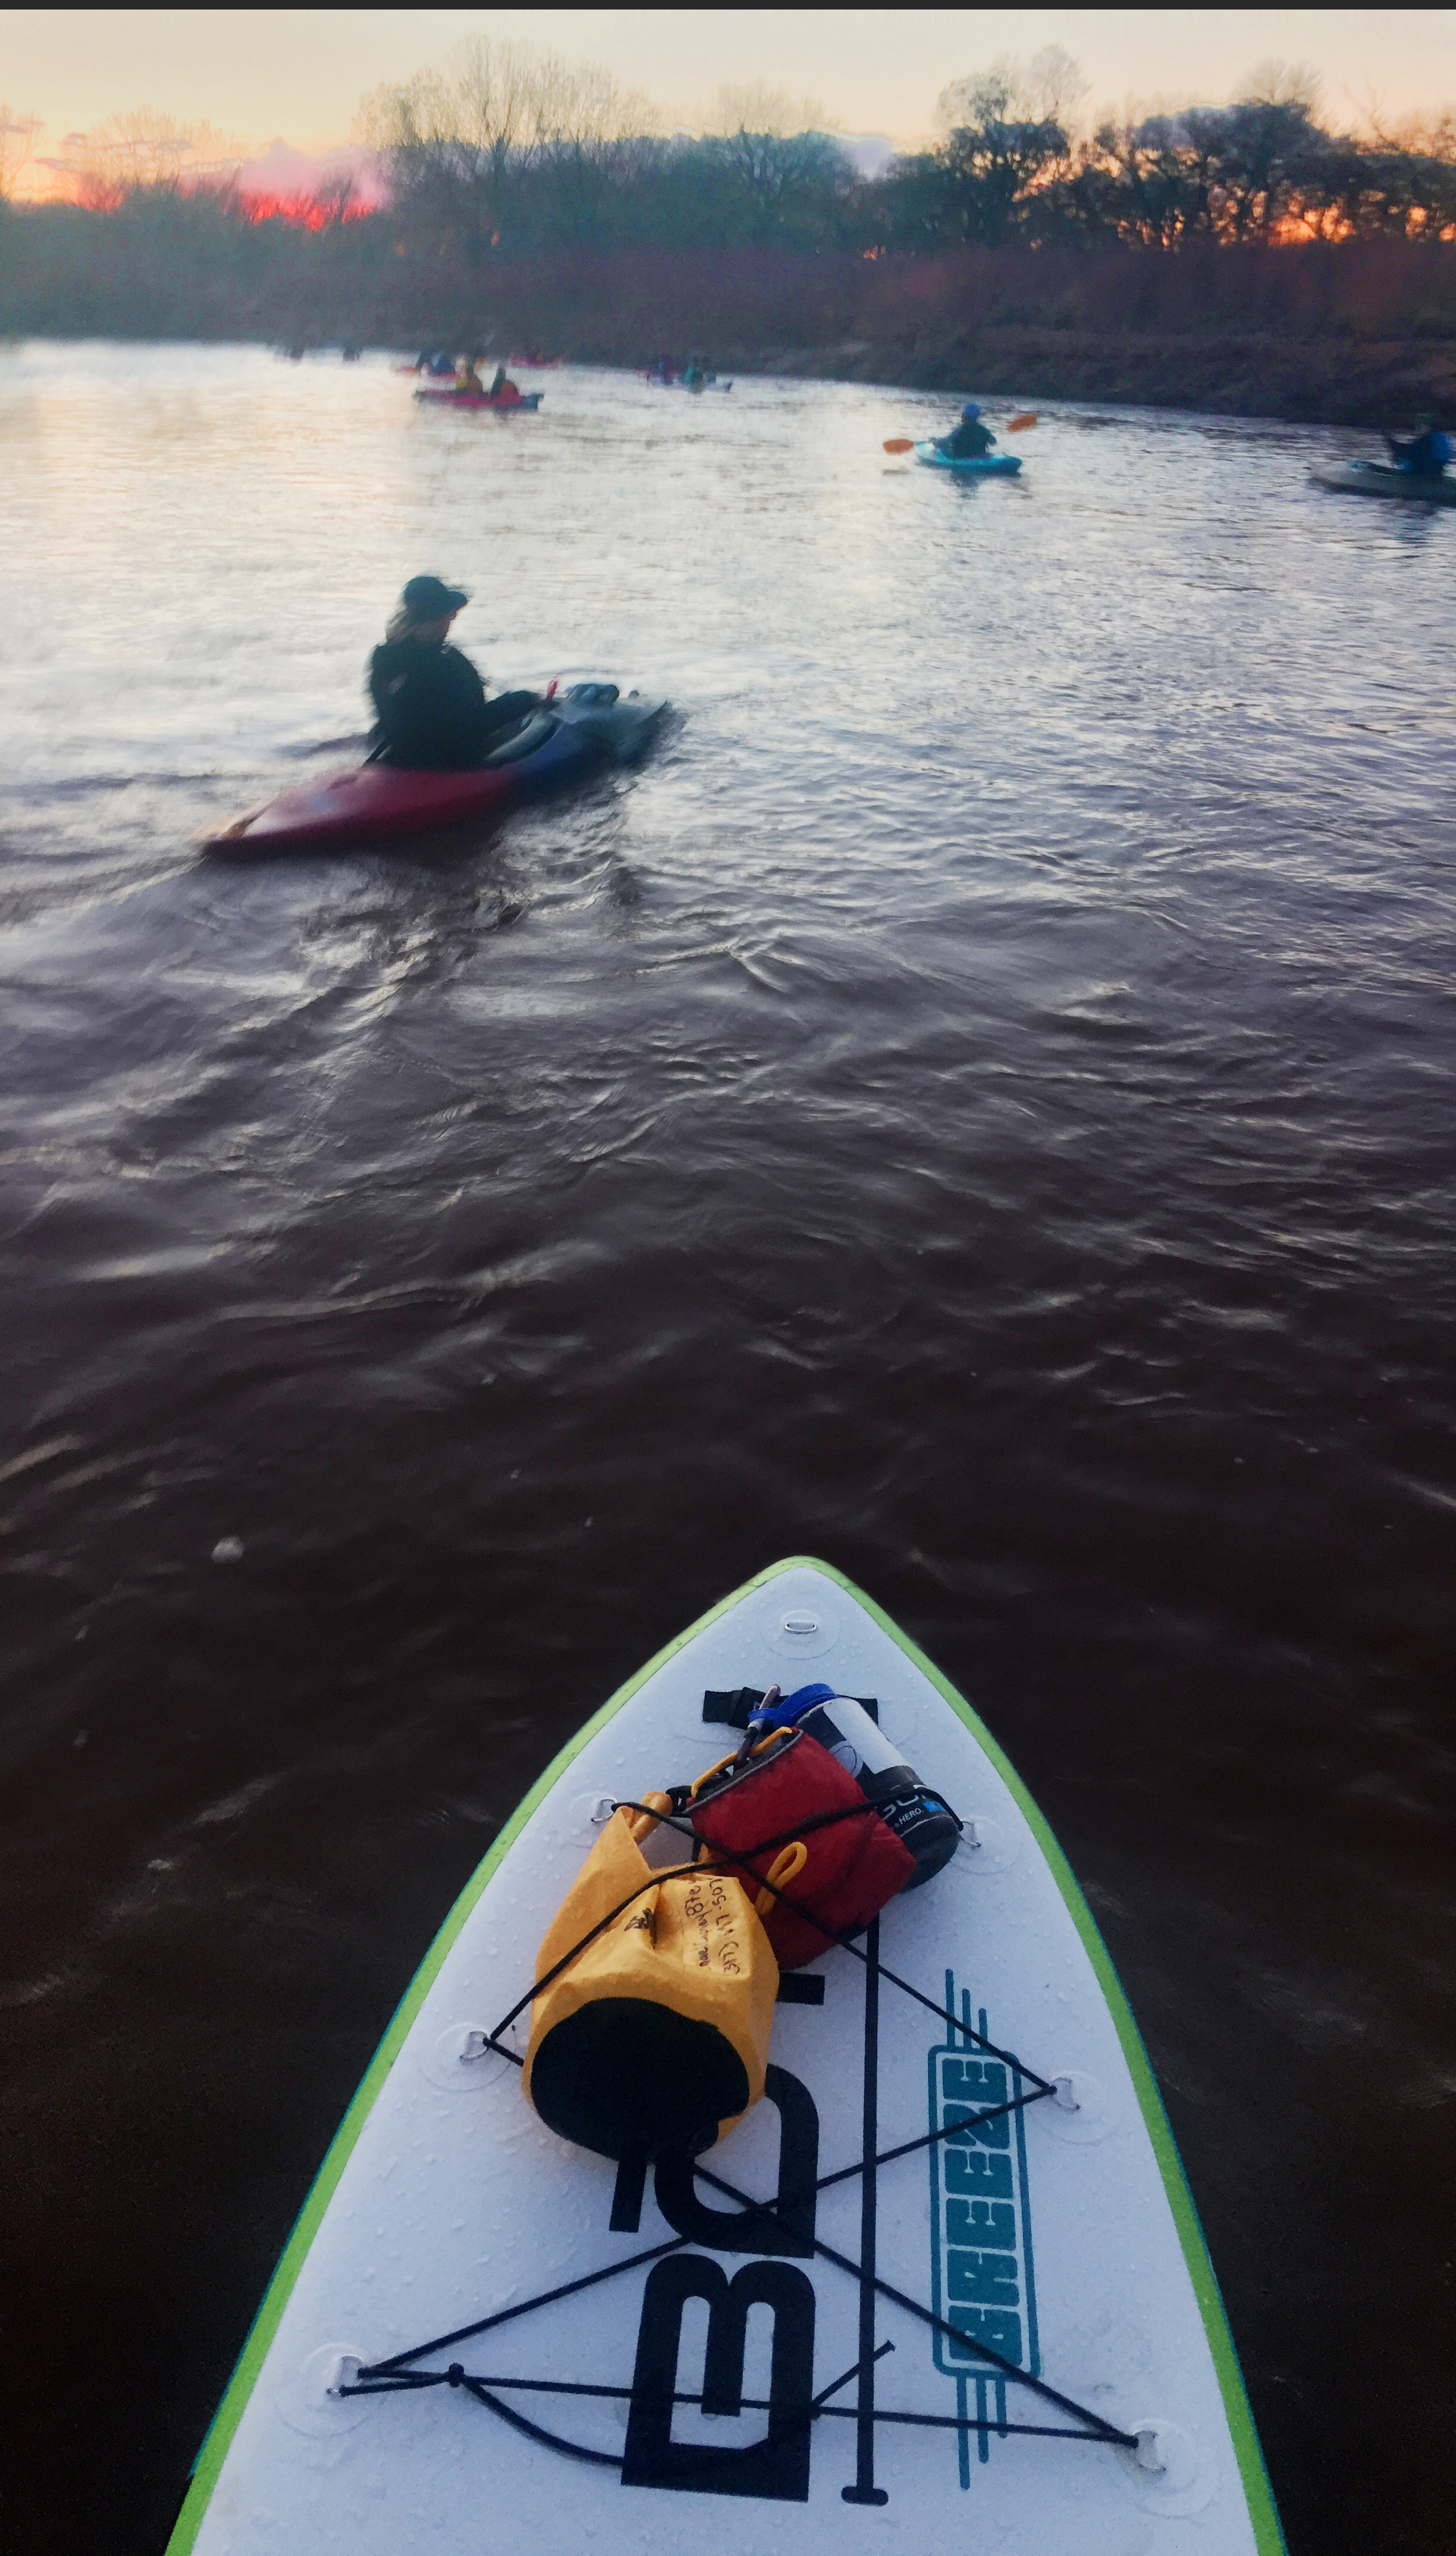 Traveling on the SUP allow for a different perspective of the river.